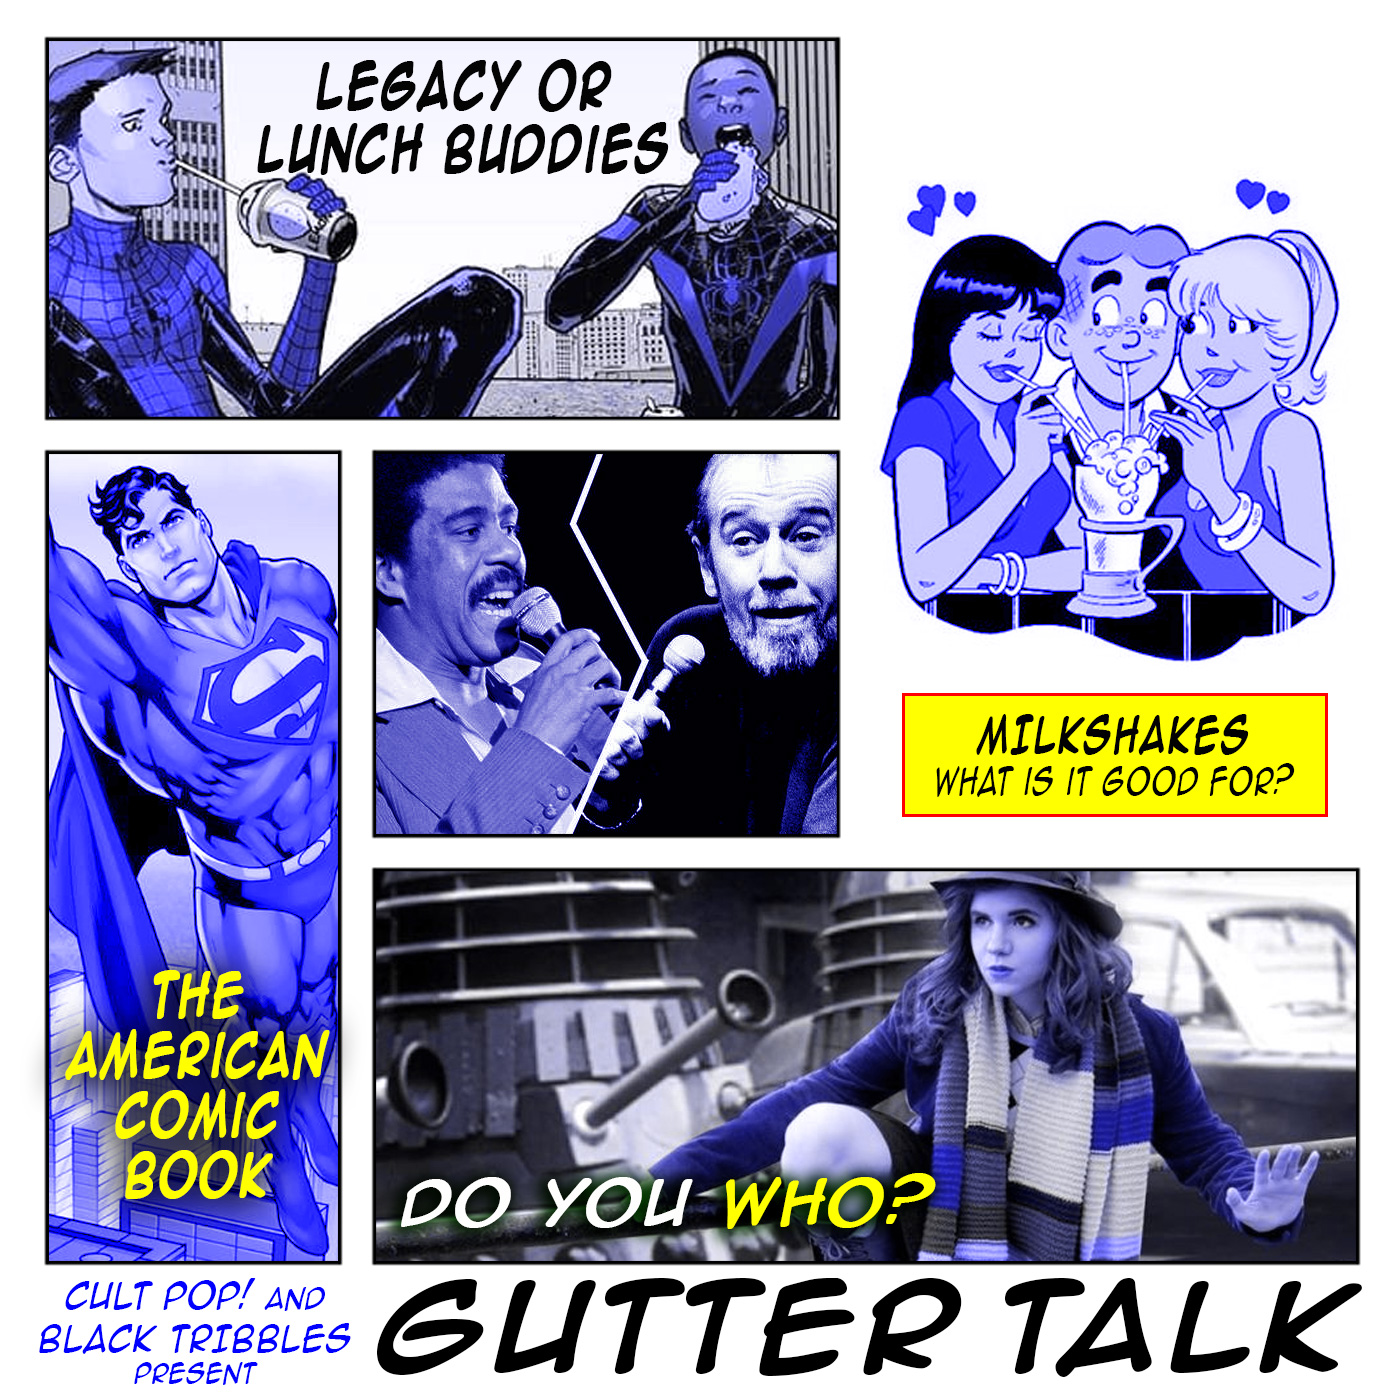 Artwork for GUTTER TALK - Blue SJW Milkshakes